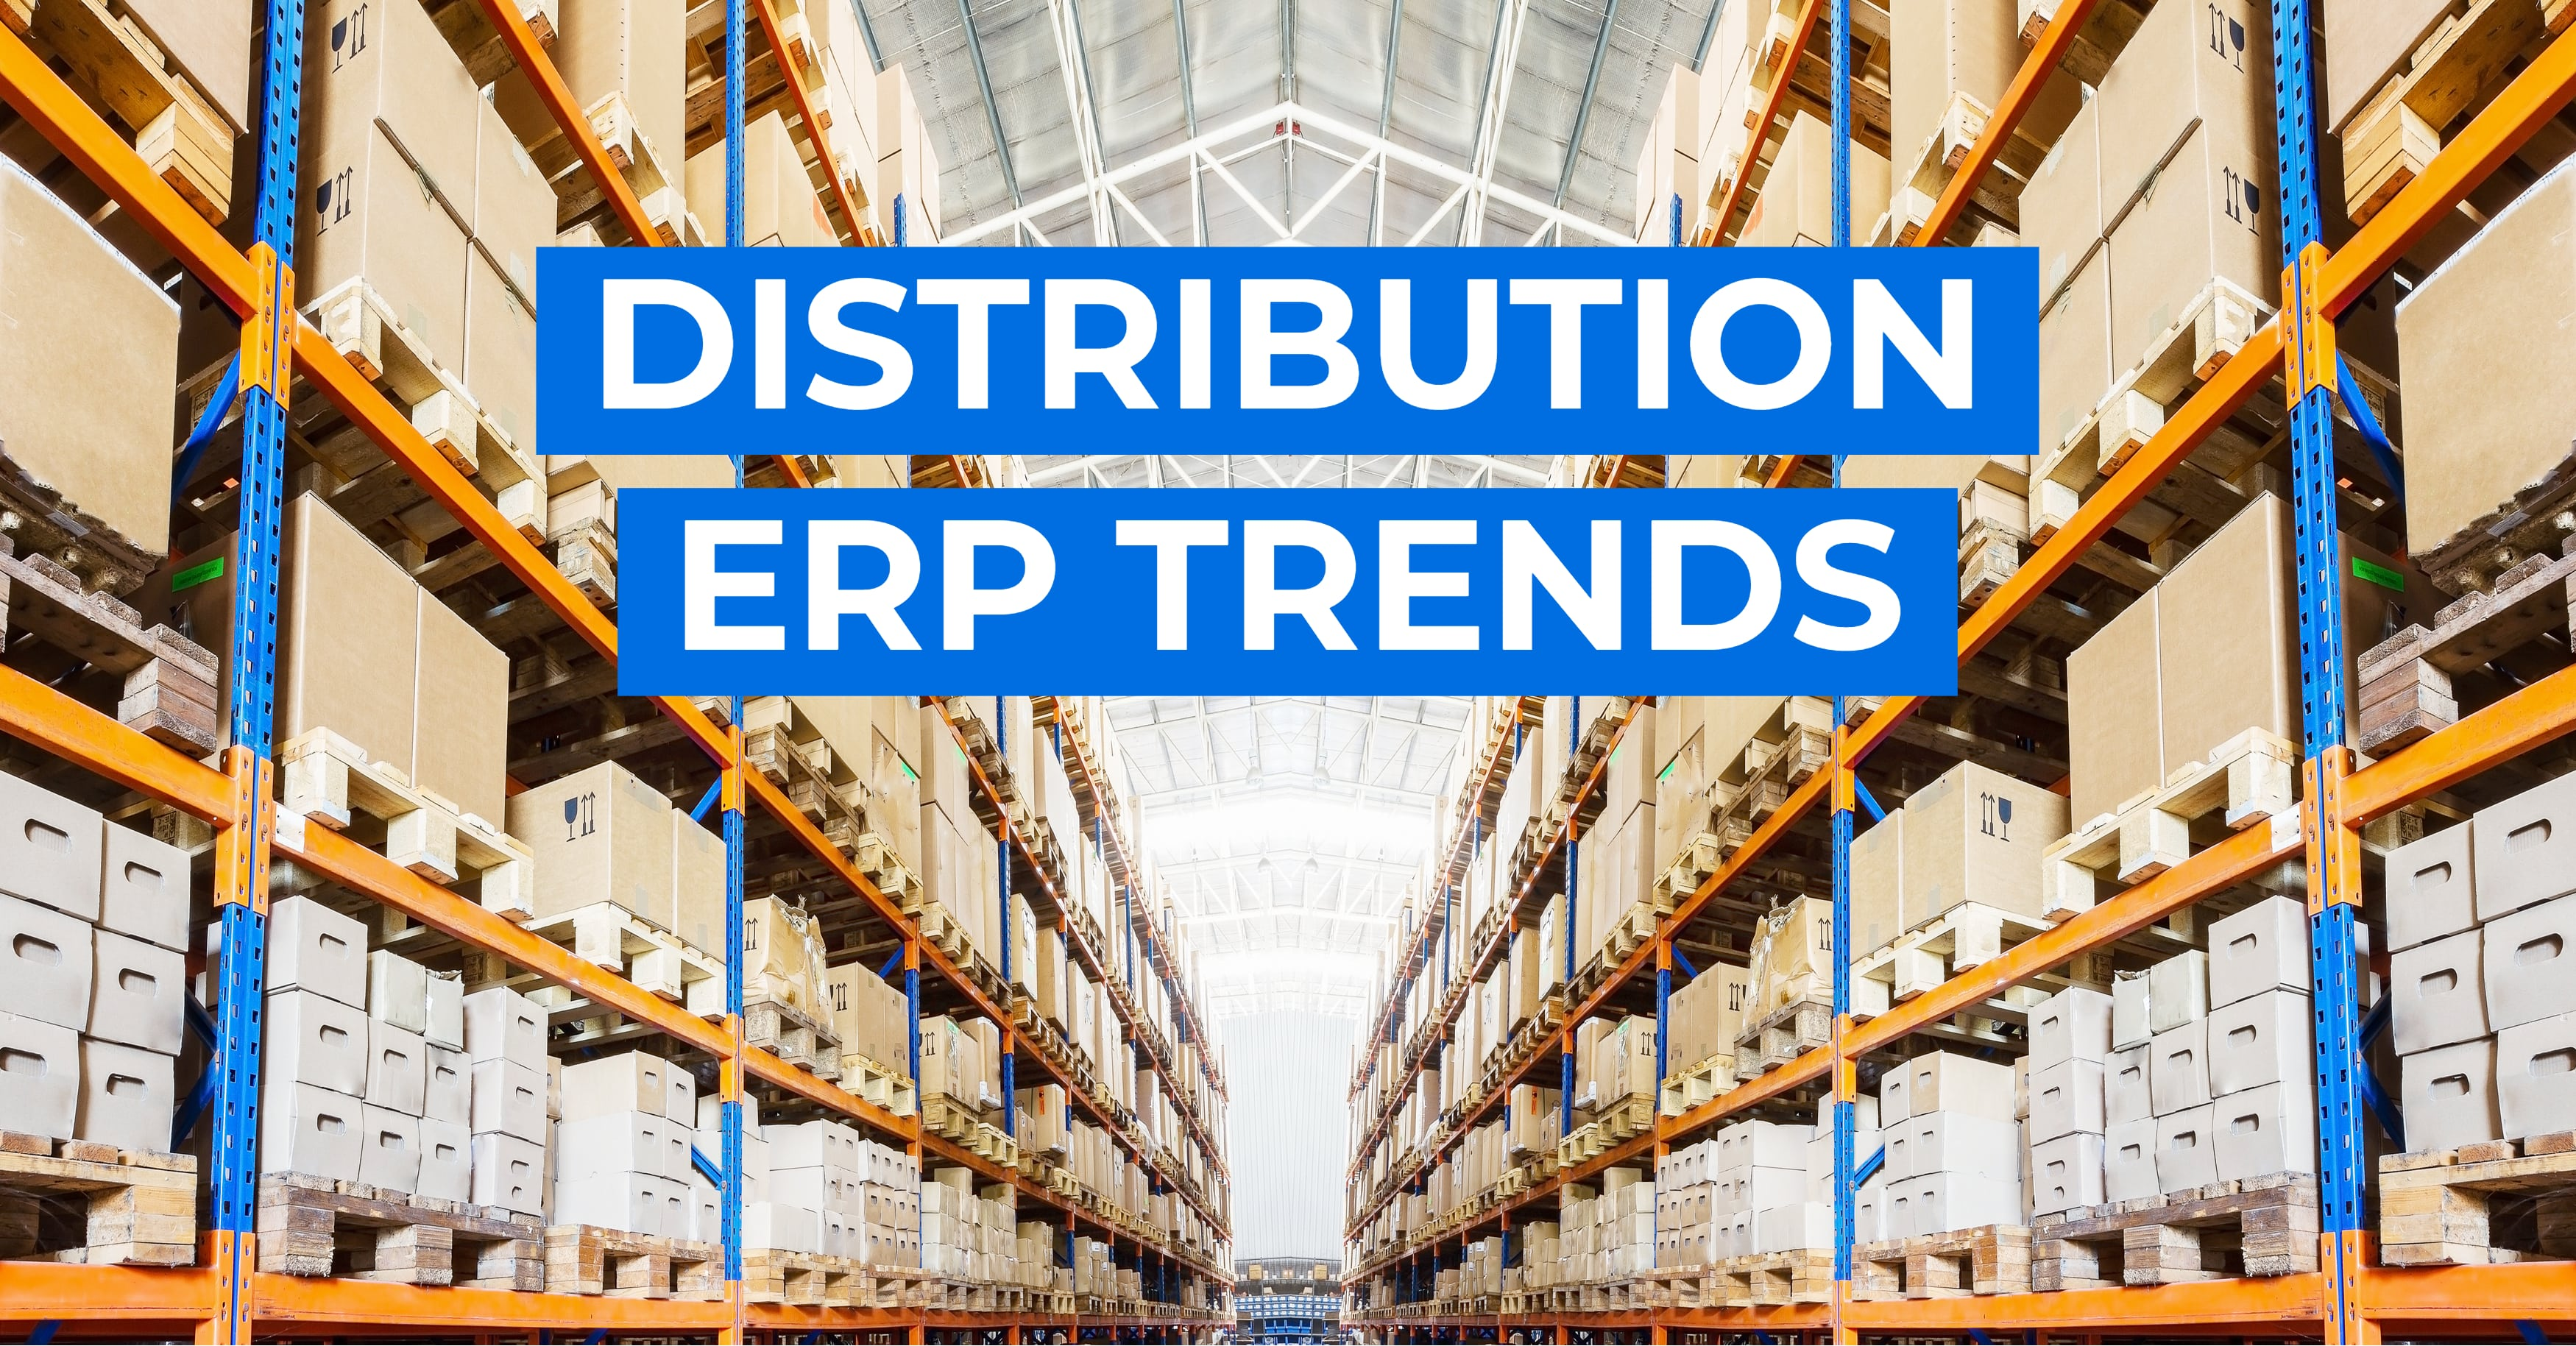 Distribution ERP Trends